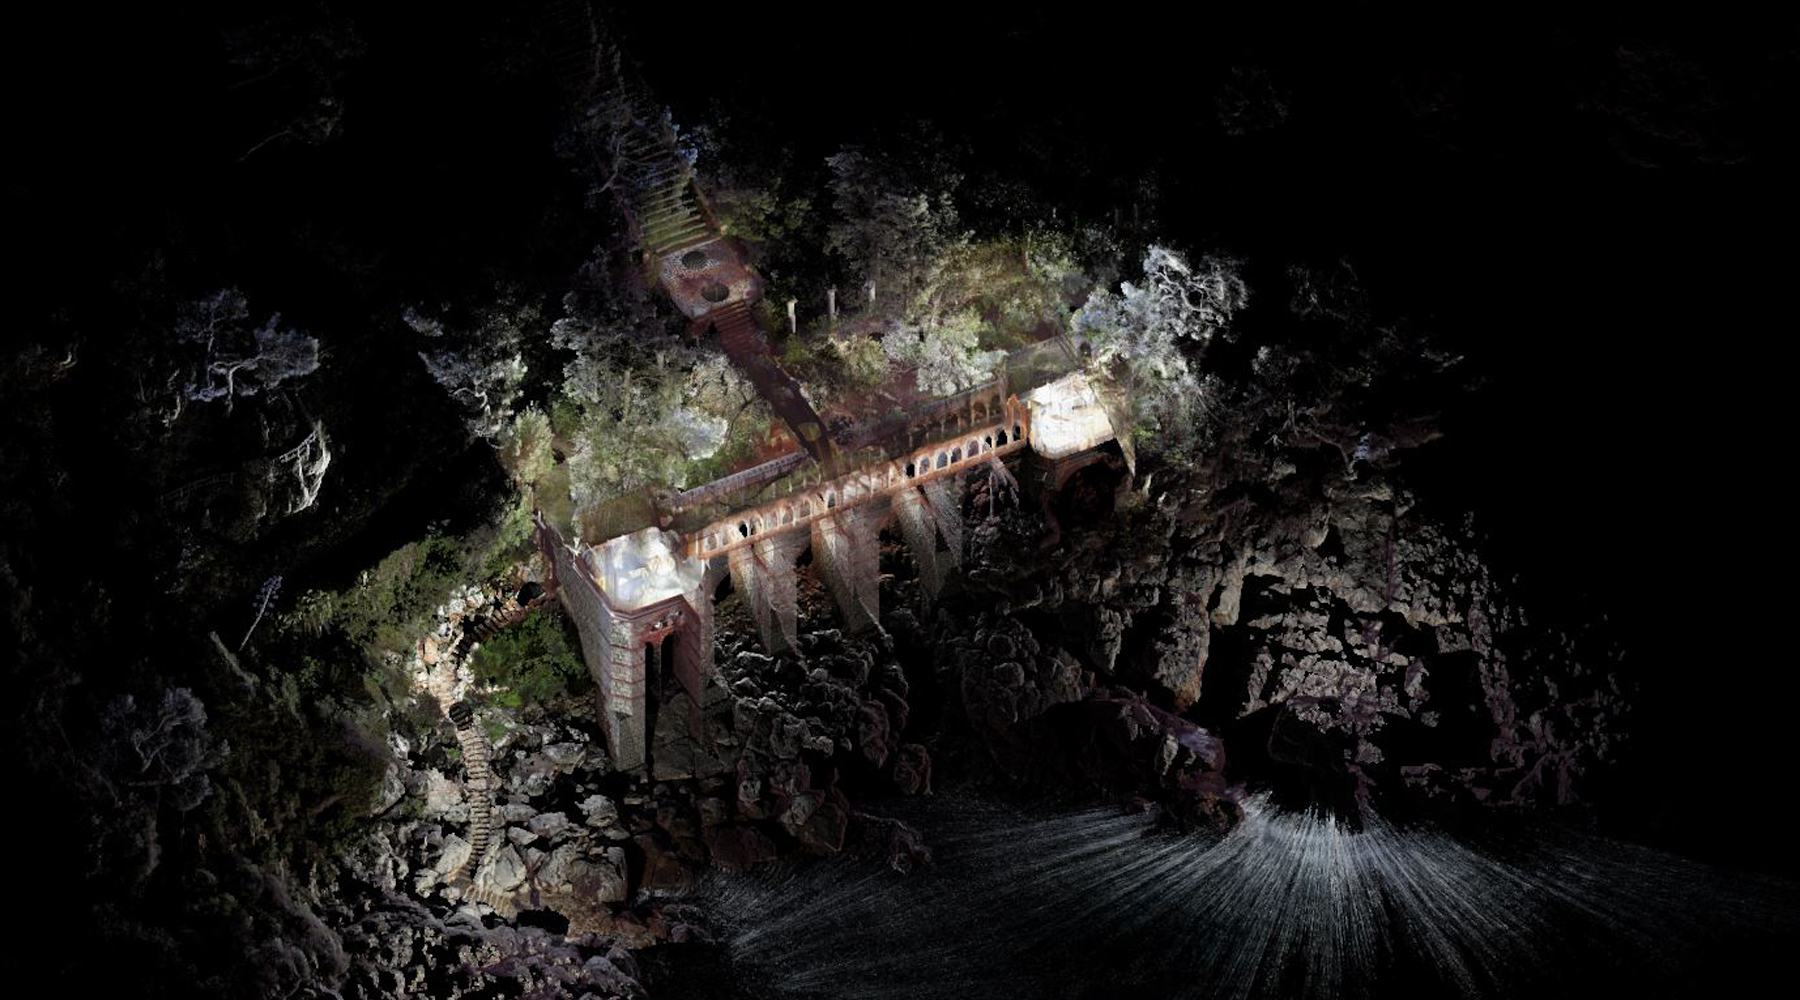 10 Villa Cypris, Roquebrune-Cap-Martin - Point cloud